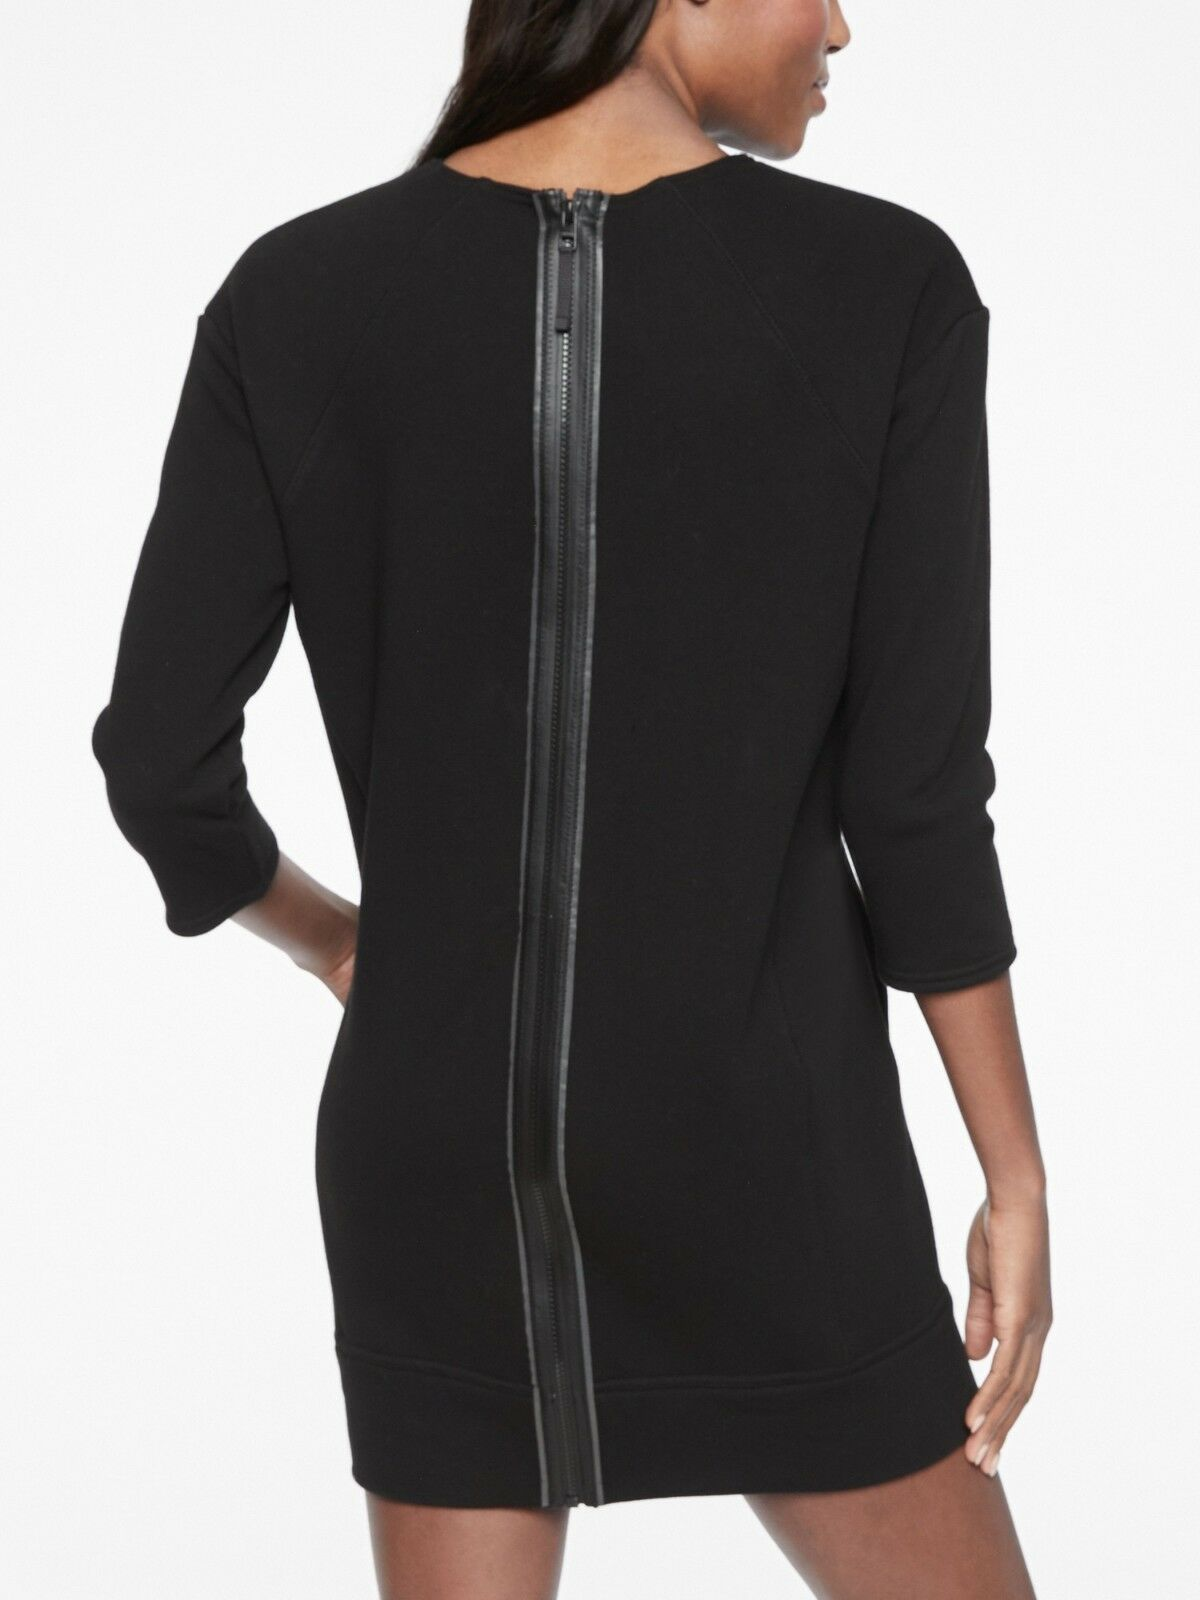 Athleta Cozy Karma Back Zip Sweatshirt Dress, schwarz Größe M         N0429